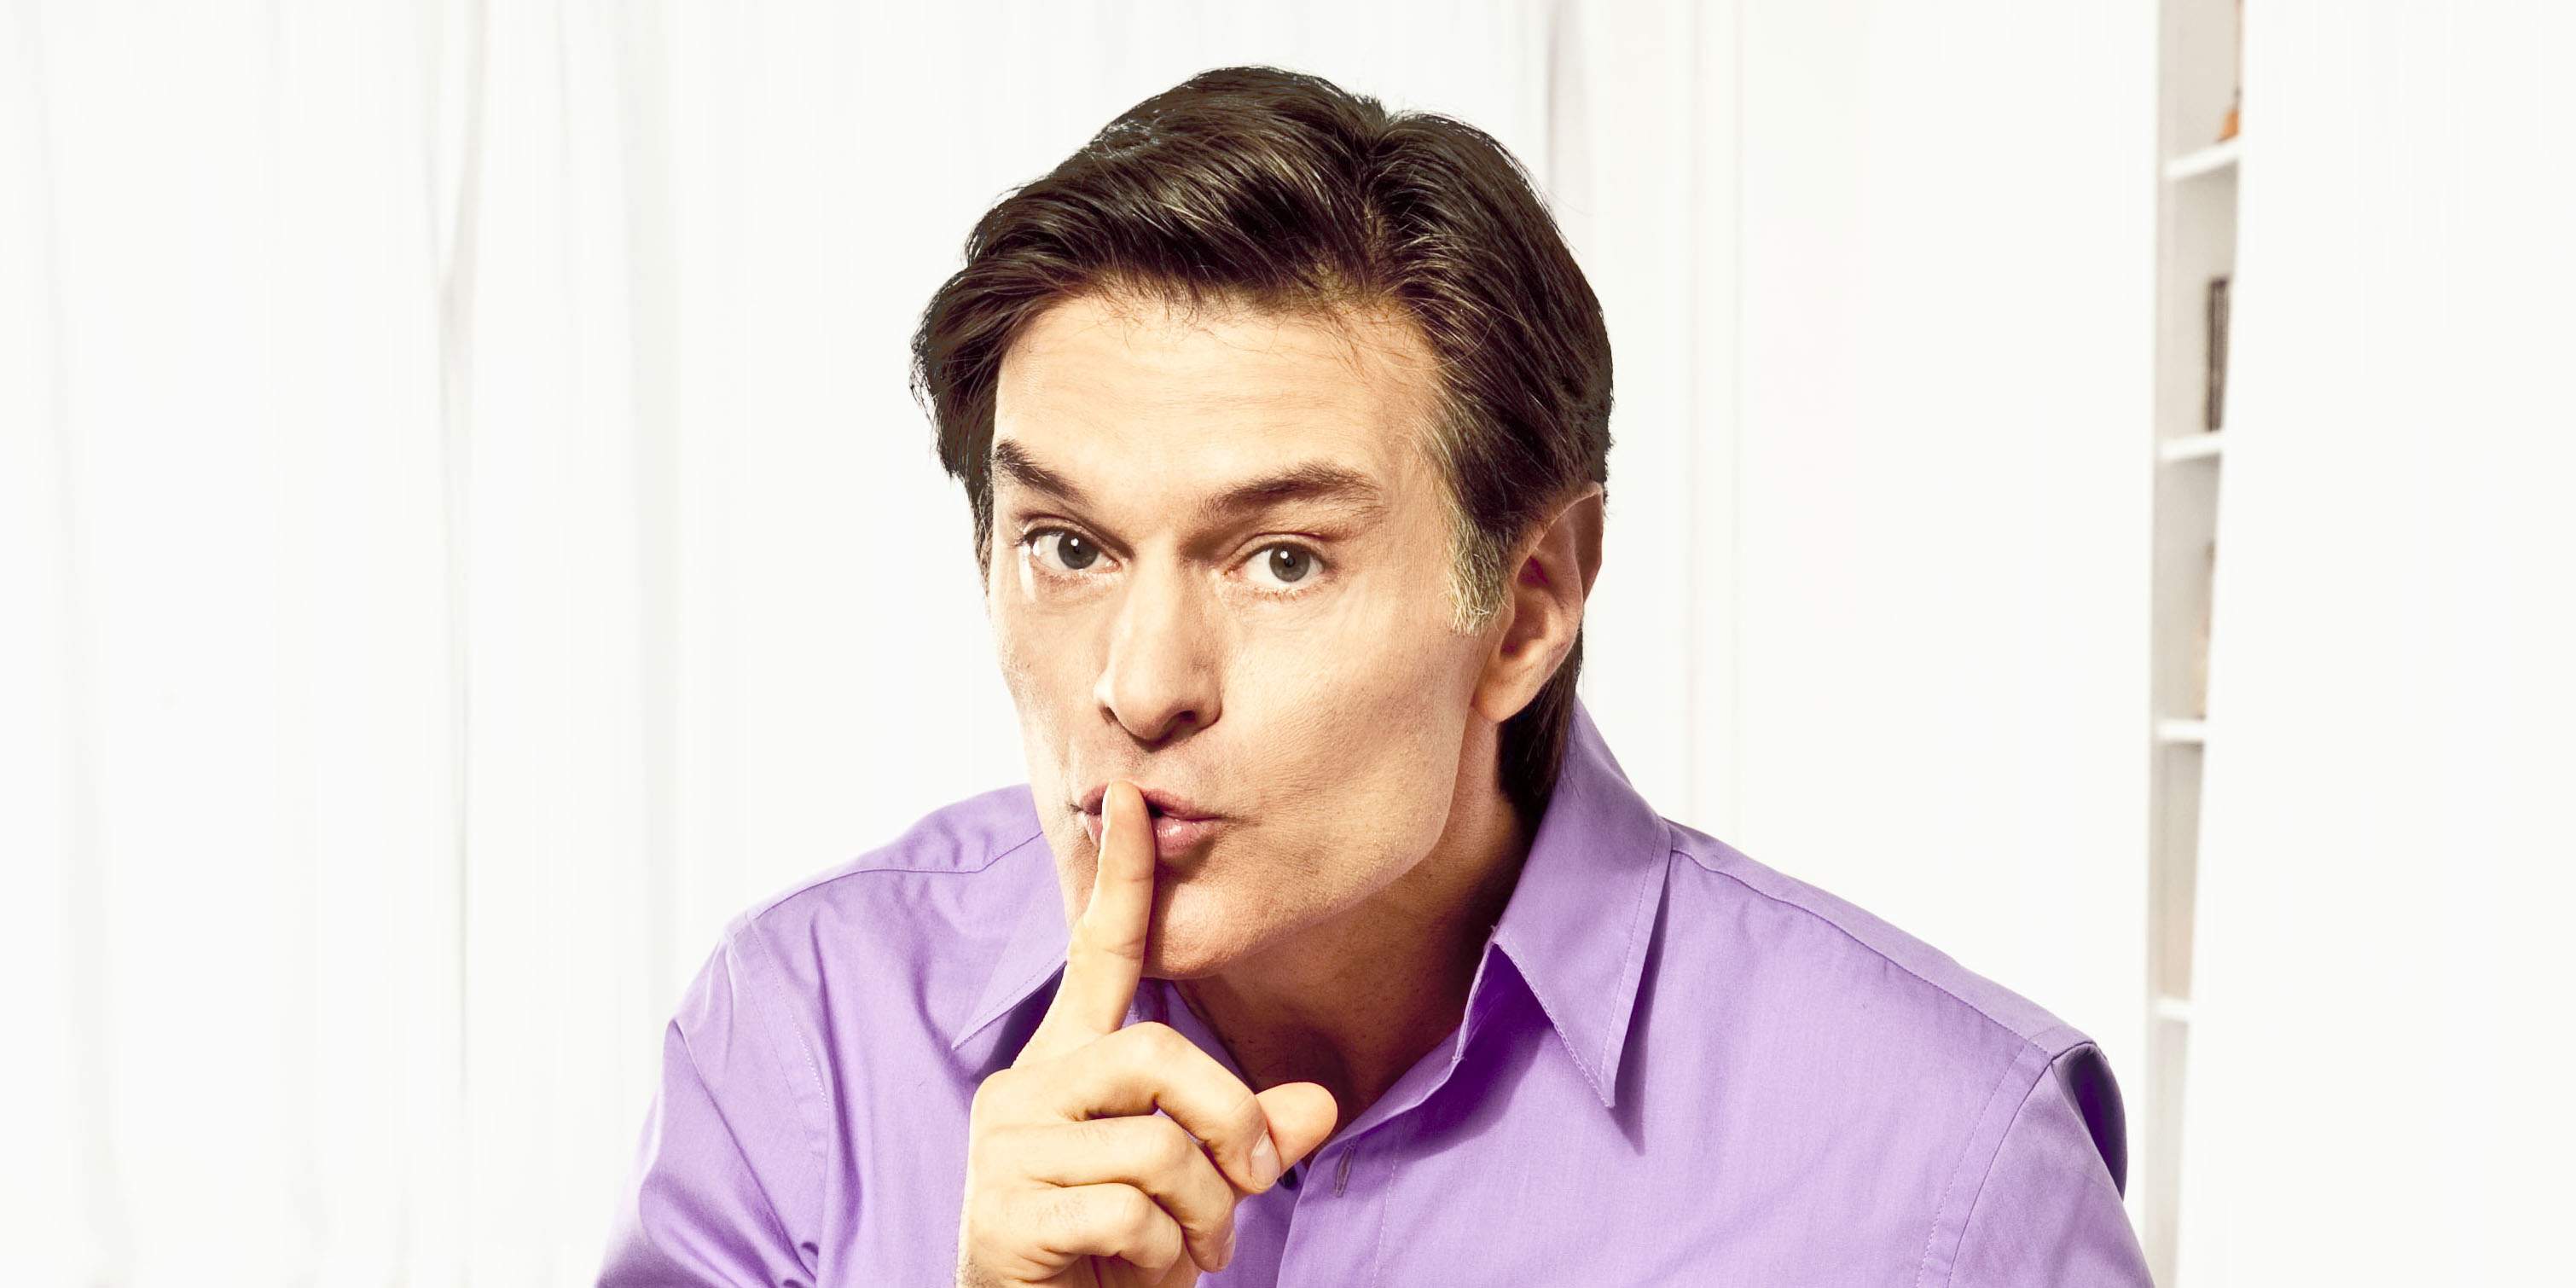 Dr Oz's Top 5 Slim-Down Secrets - Weight Loss Tips and Tricks